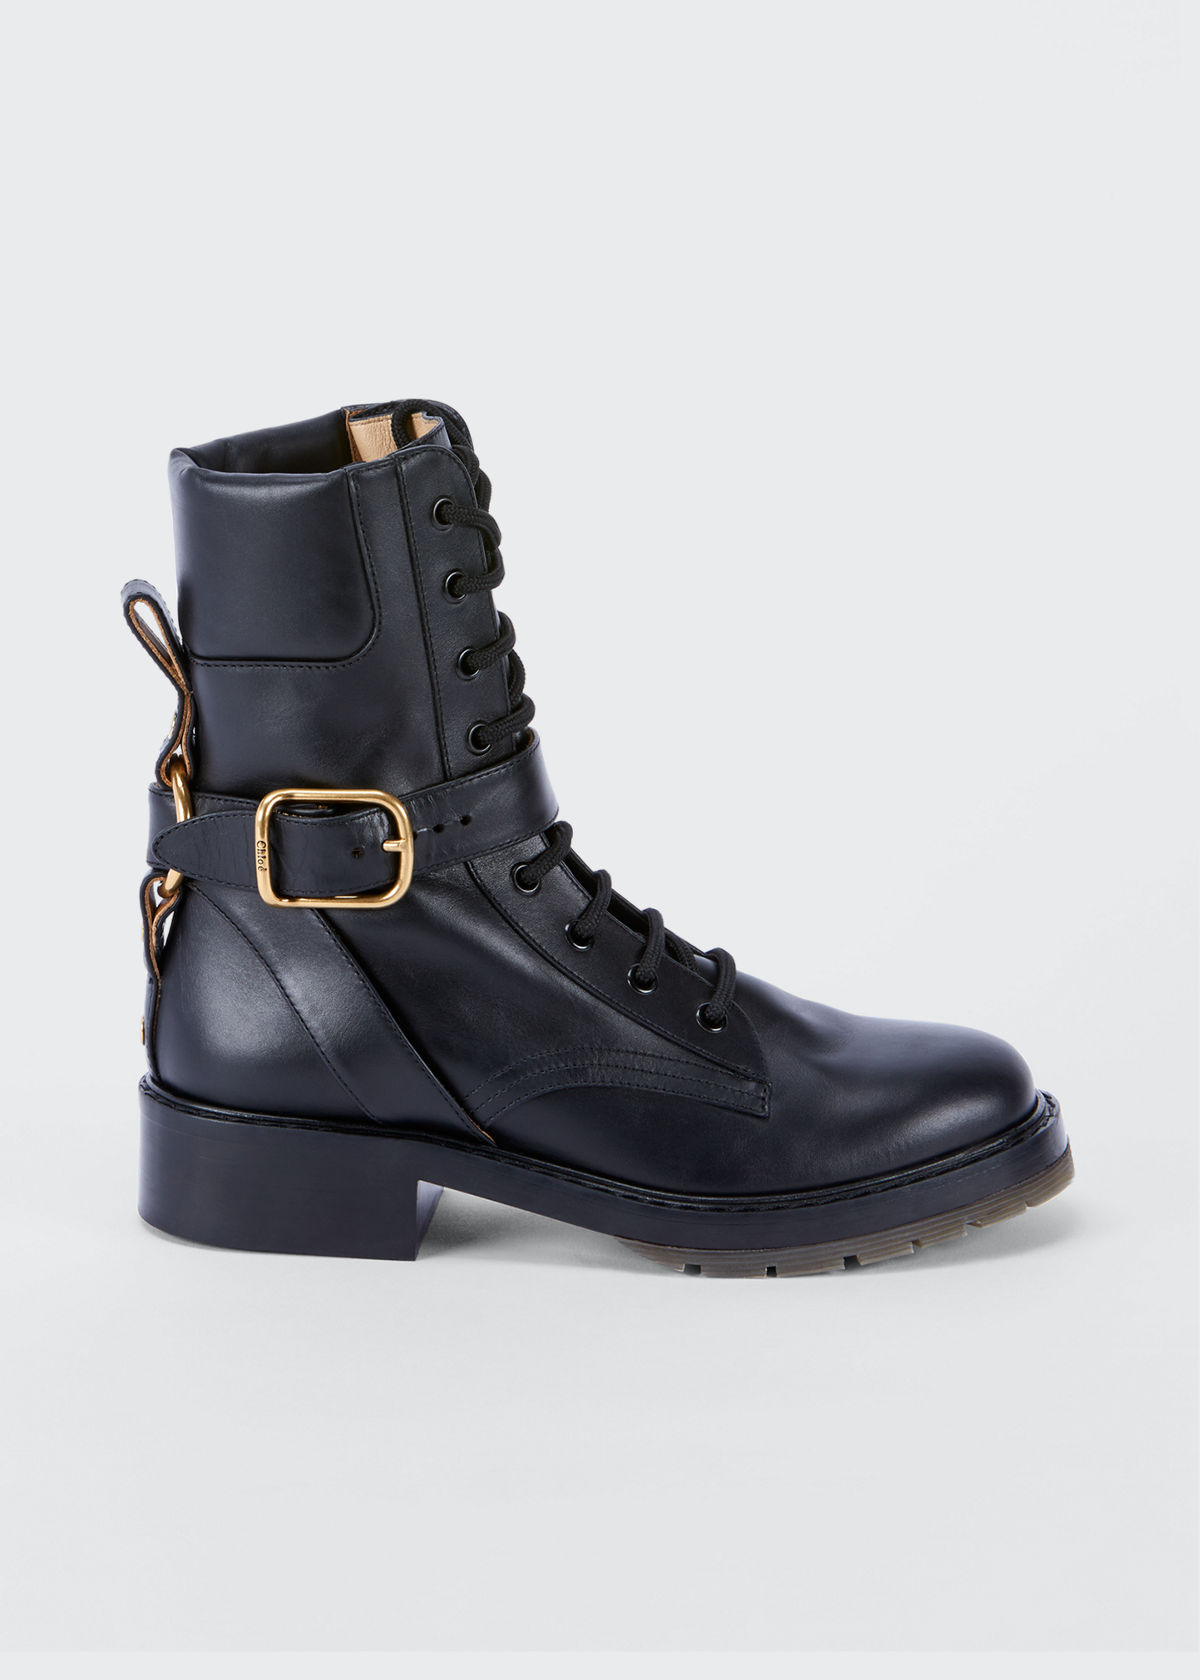 Chloé DIANE LACE-UP BUCKLE COMBAT BOOTIES